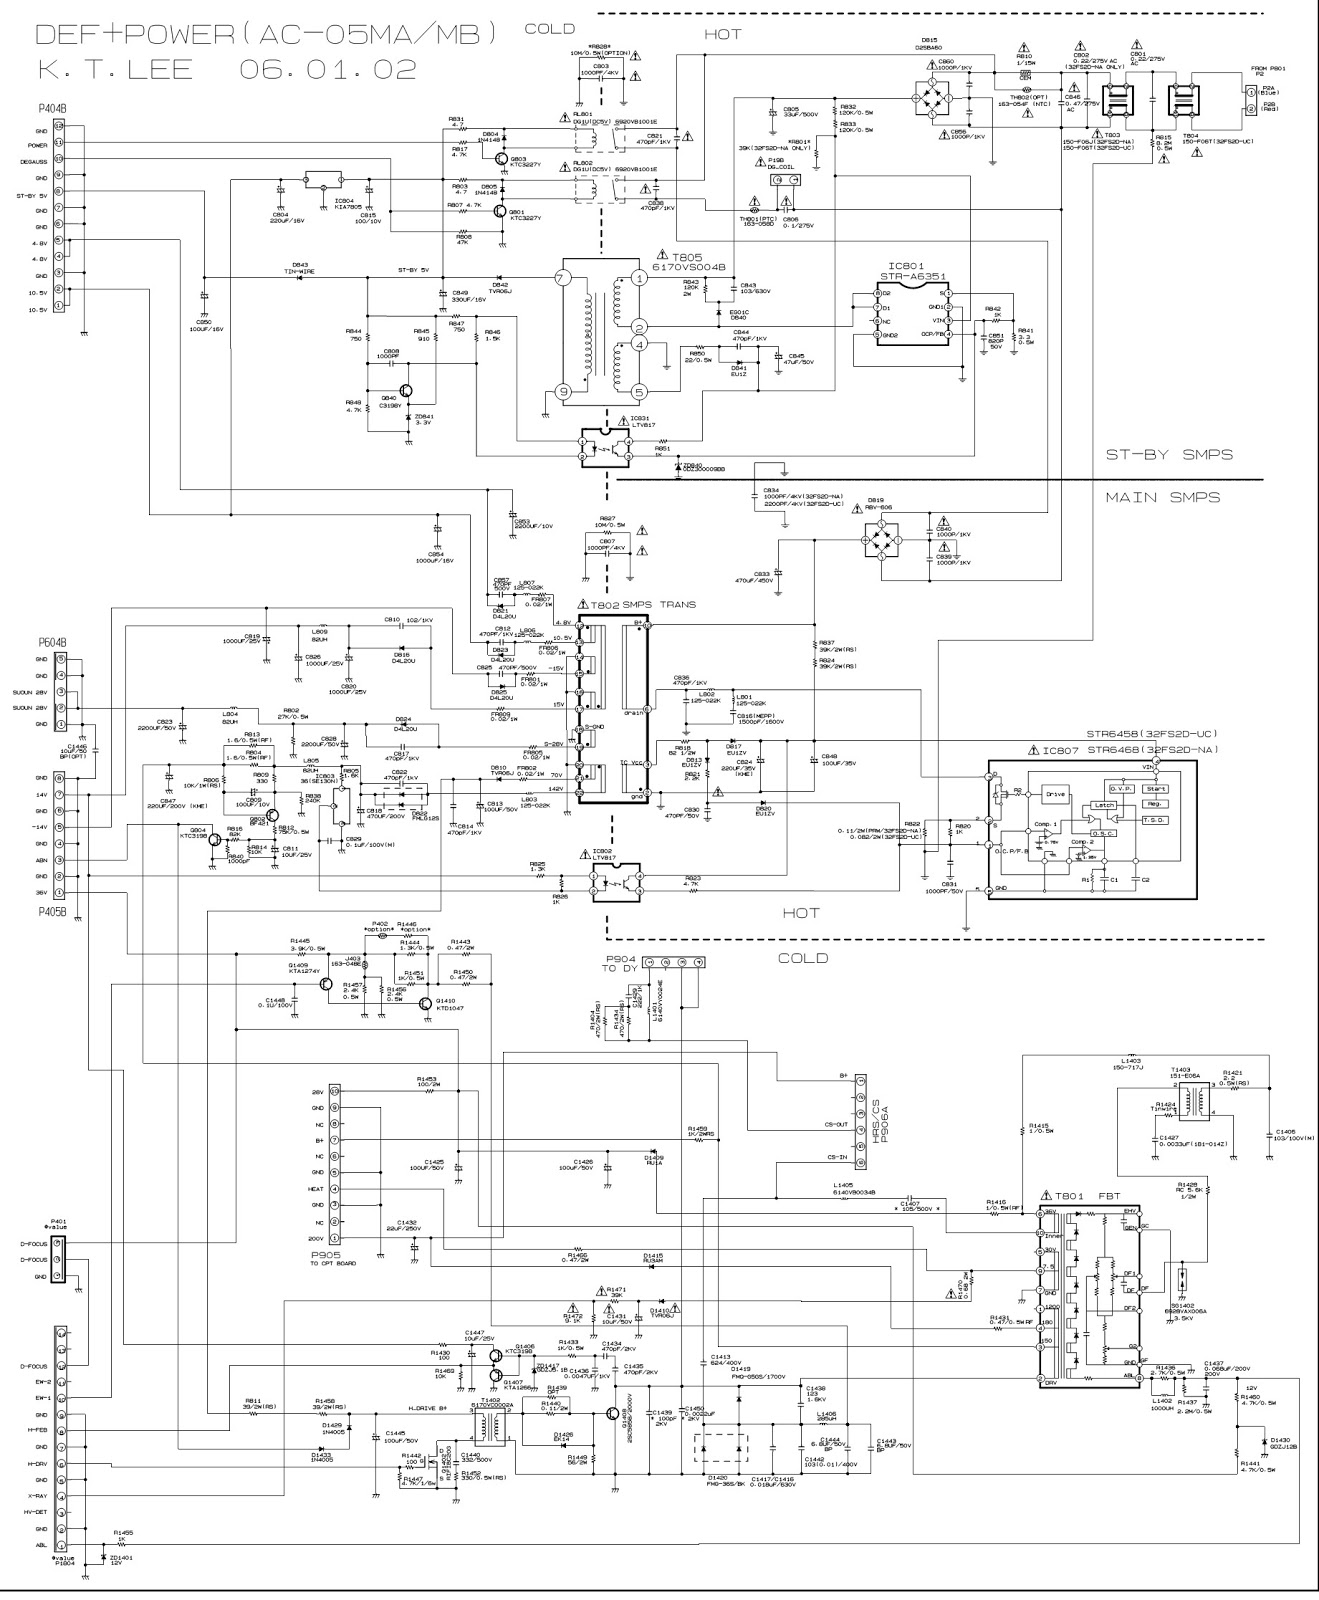 lg tv circuit diagram the wiring diagram lg 30fs4d lg 32fs4d uc color television circuit diagram circuit diagram